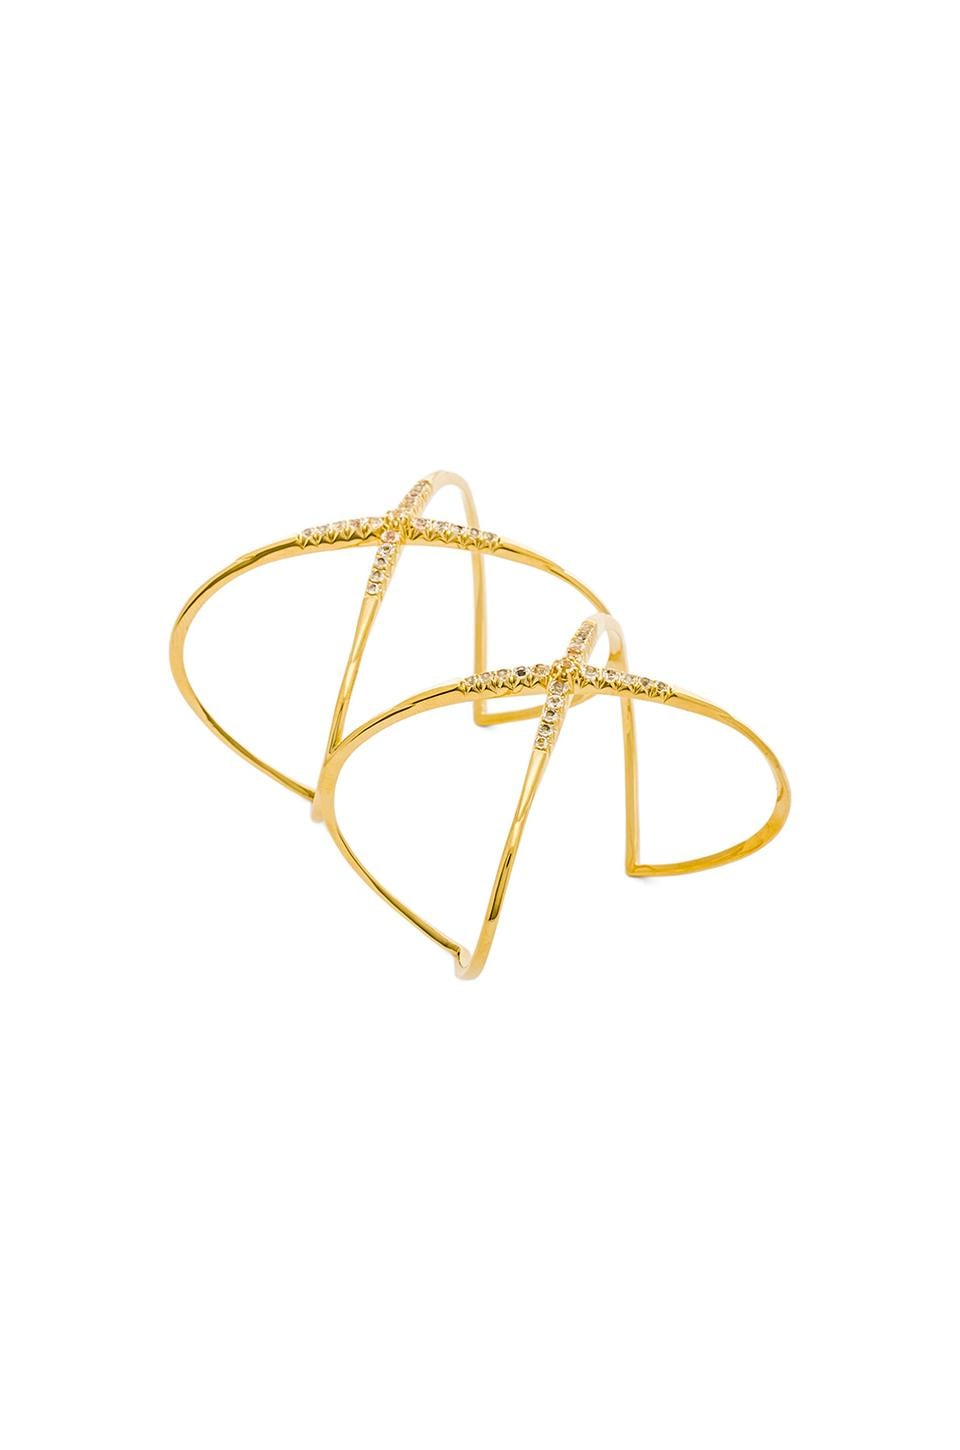 Elizabeth and James Vida Cuff in Yellow Gold